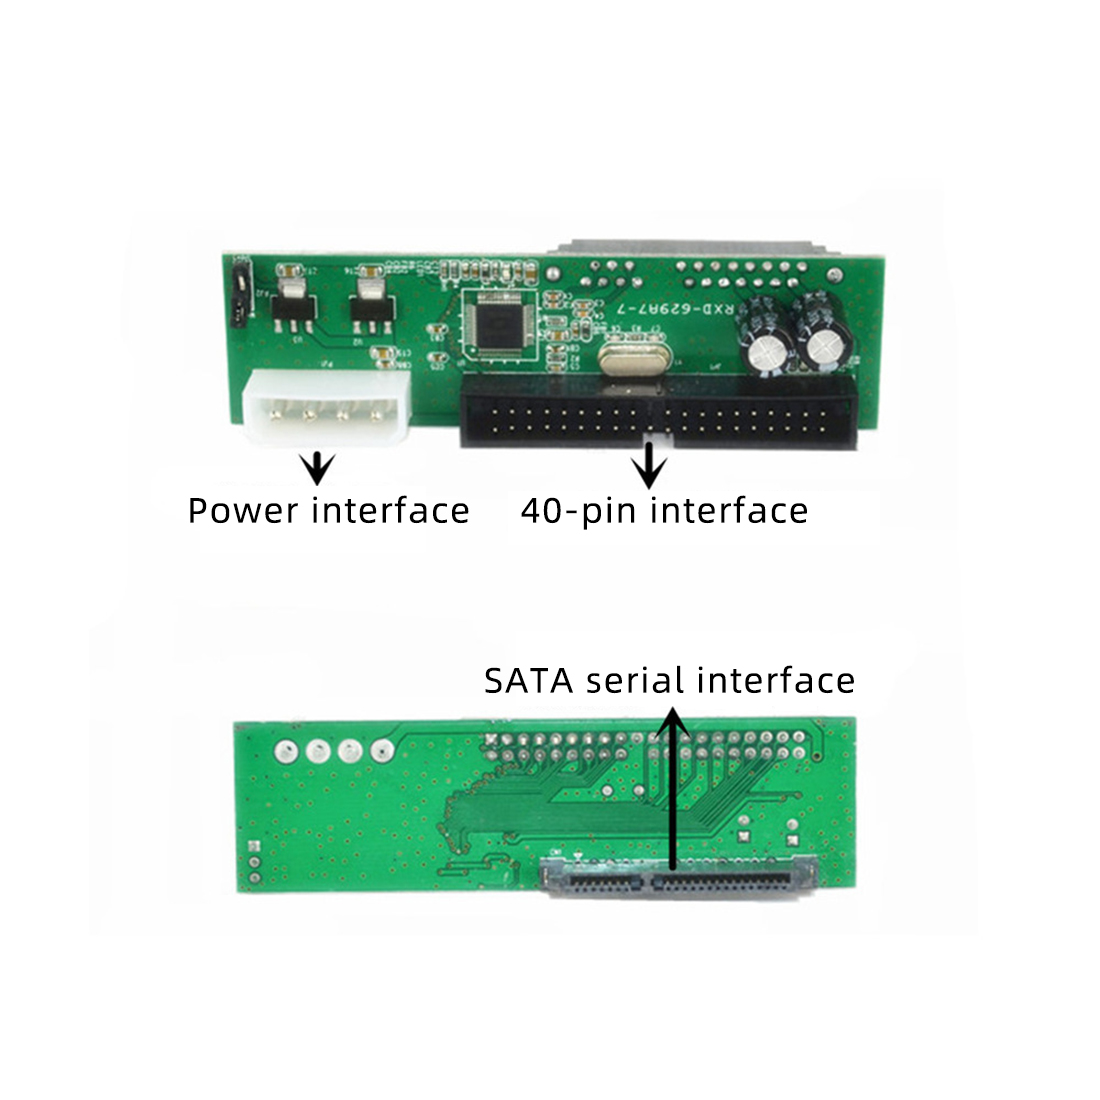 Pata IDE to Sata Hard Drive Adapter Converter 7 15 Pin 3 5 2 5 quot DVD HDD Parallel to Serial ATA for CD ROM CD RW DVD DVD RAM HDD in Add On Cards from Computer amp Office